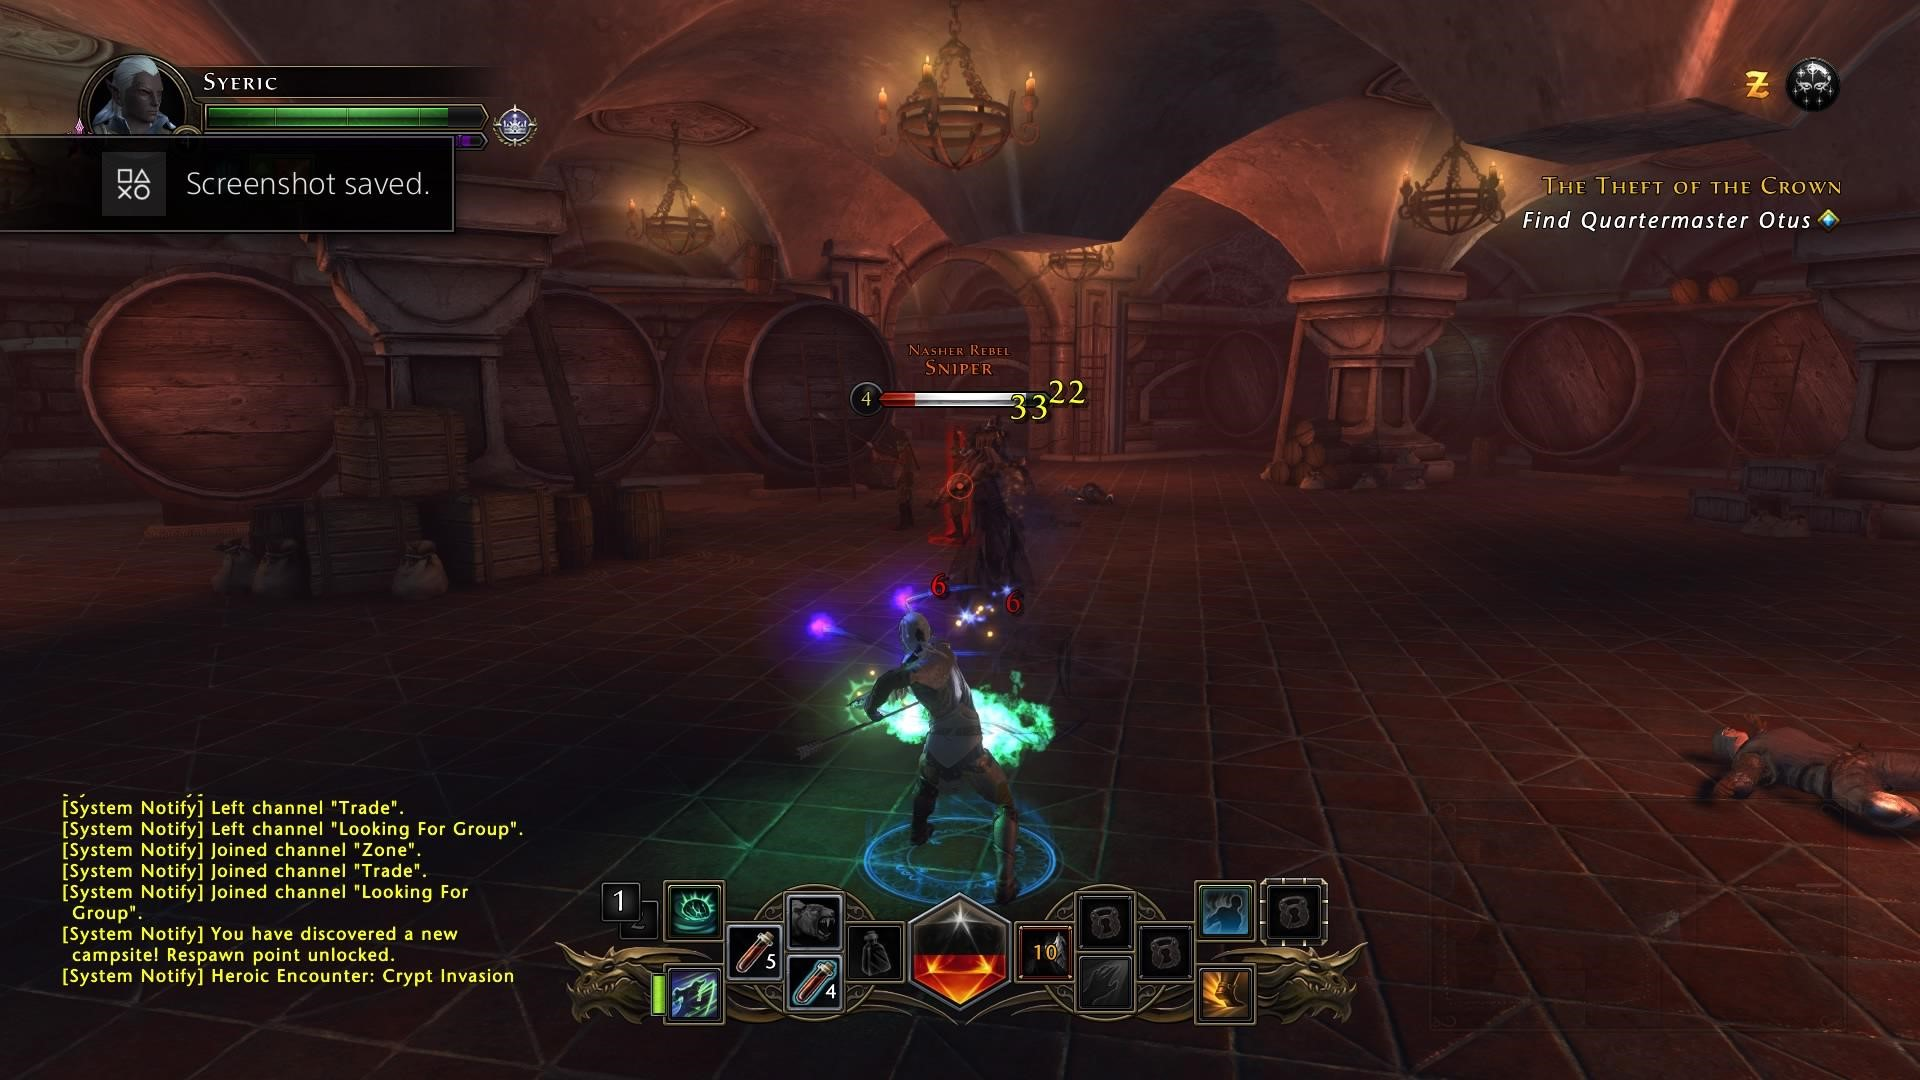 Neverwinter's combat translates perfectly to PS4 controls